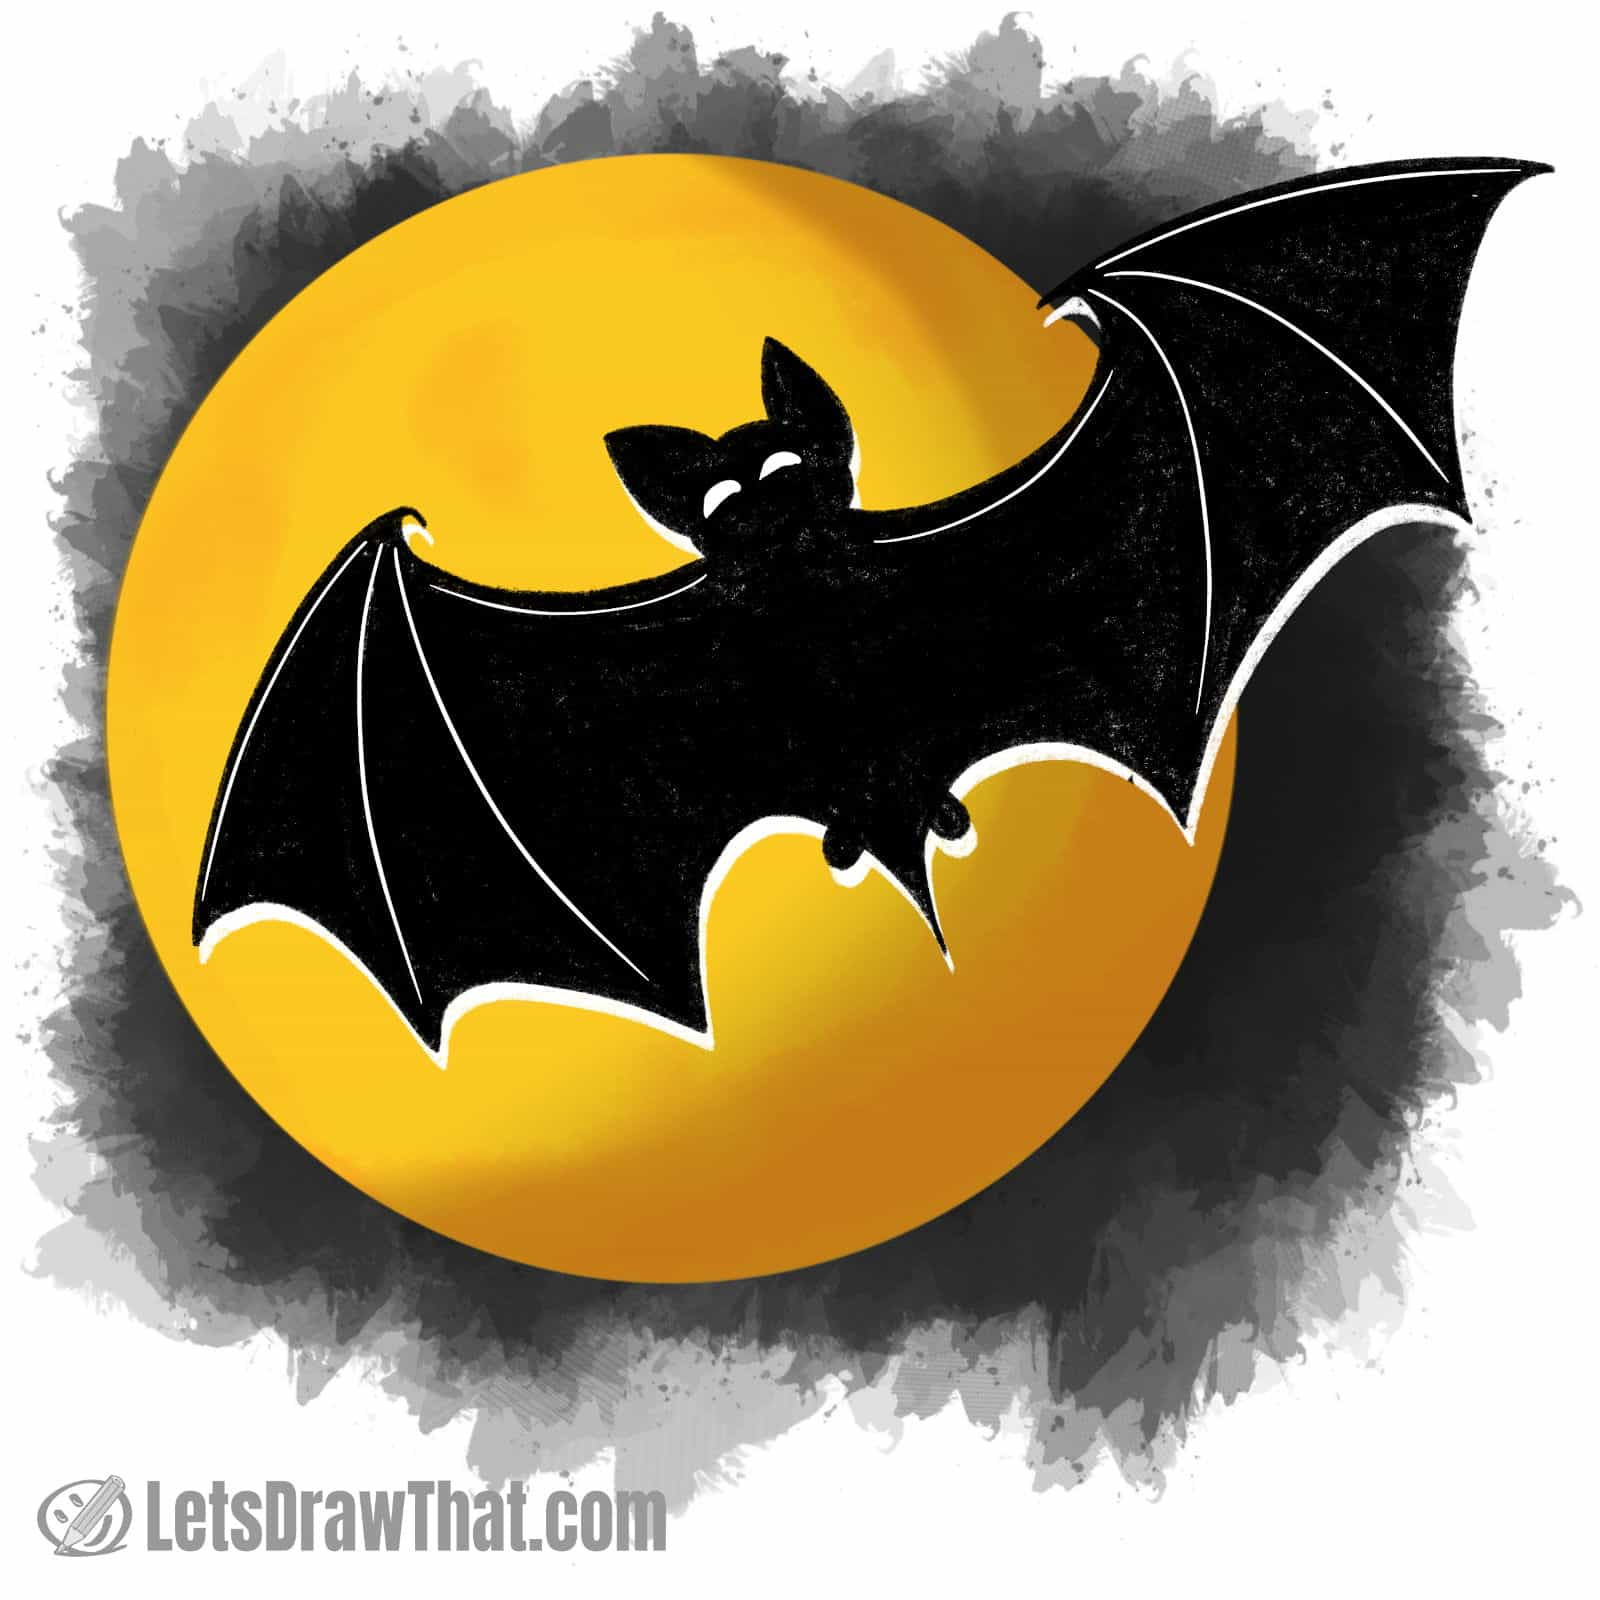 How to draw a bat silhouette: finished drawing coloured-in